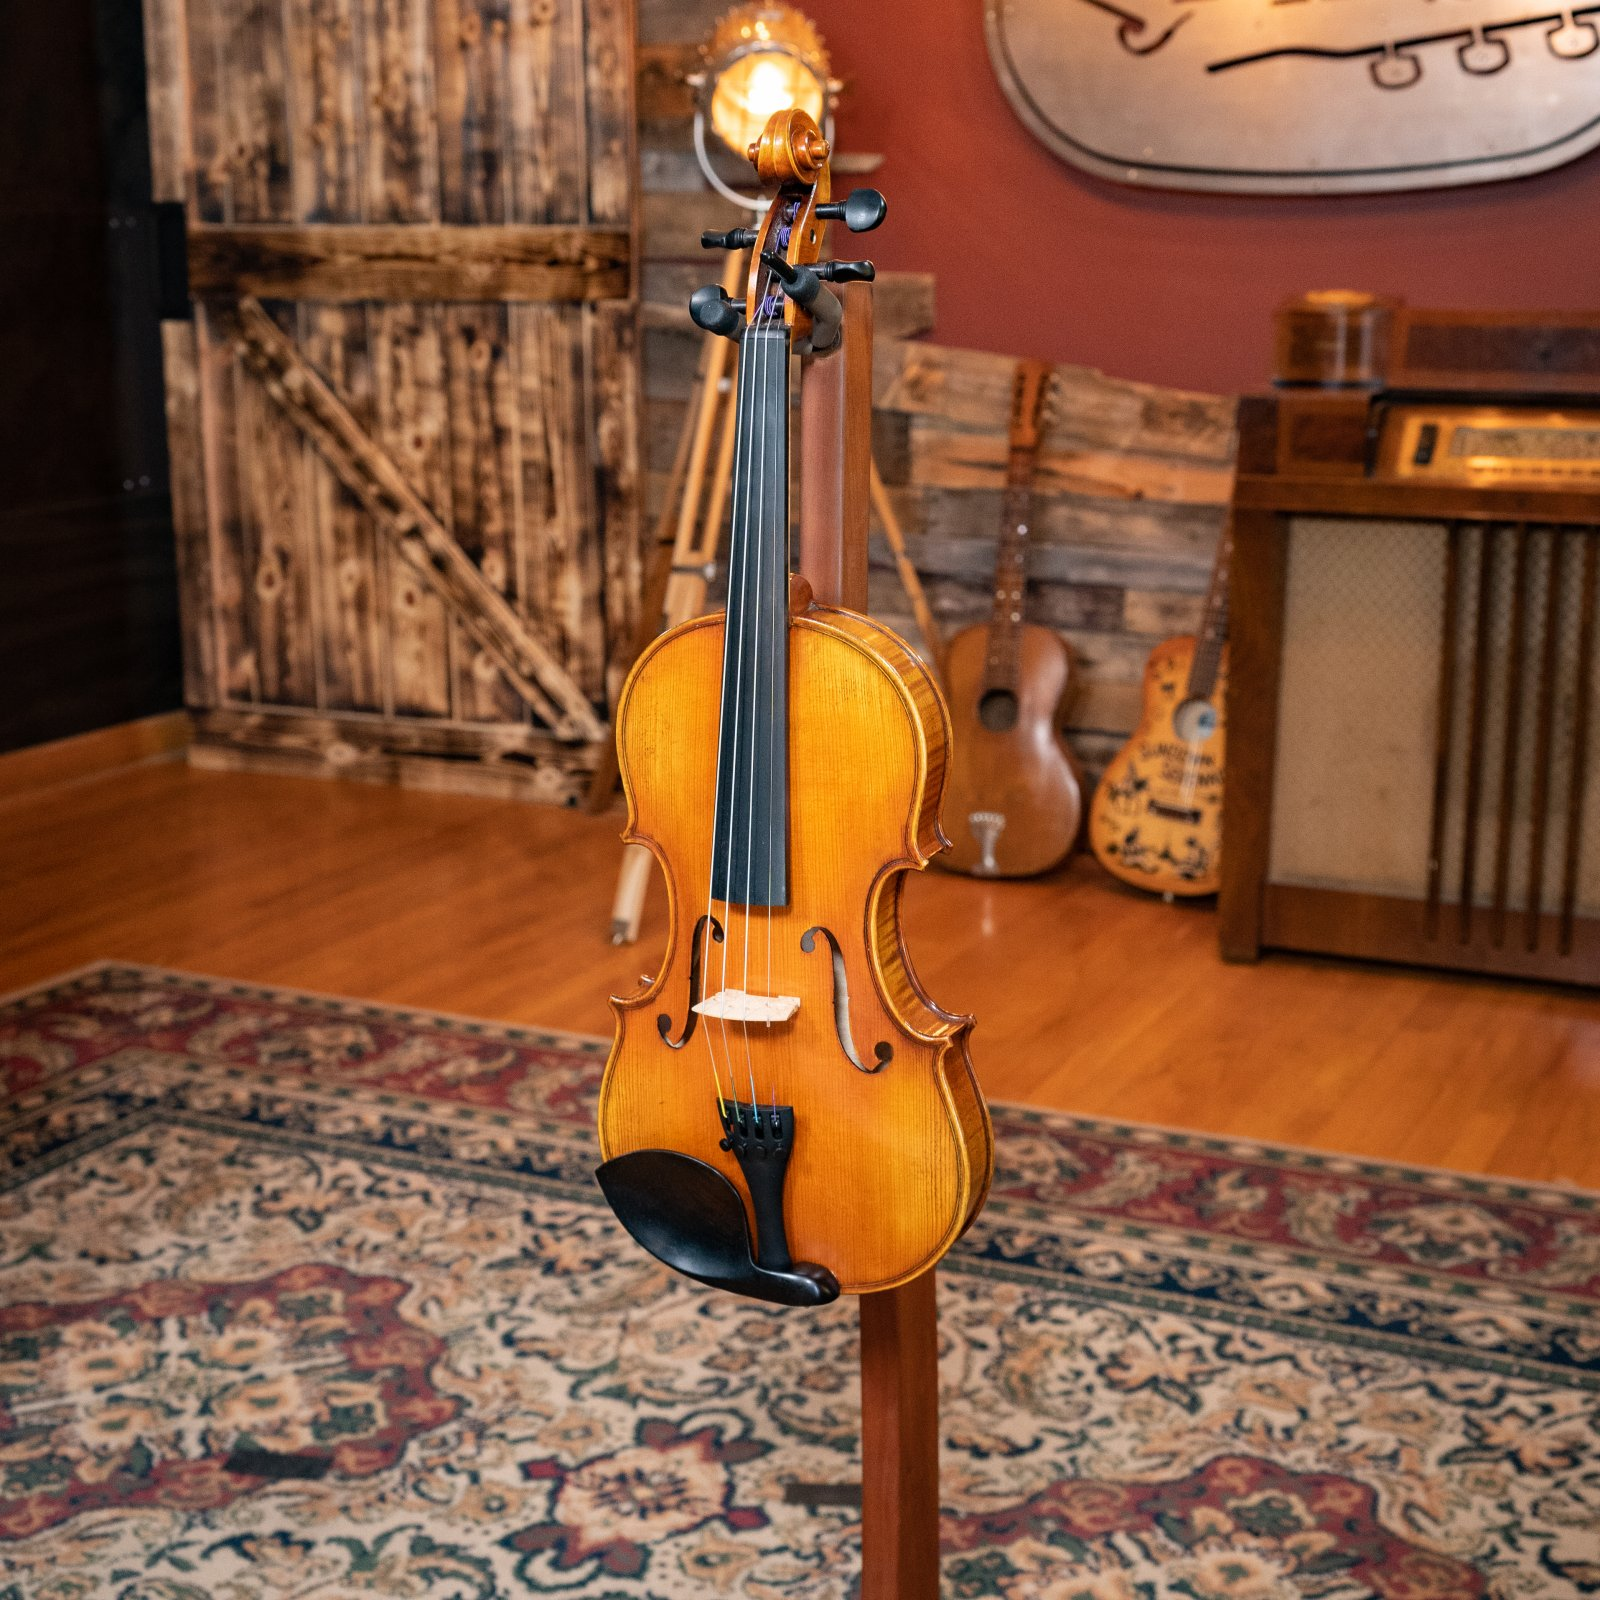 Eastman VLF3 Master Hand-Carved Pro Fiddle / Violin Outfit w/ Fishman Pickup #4780